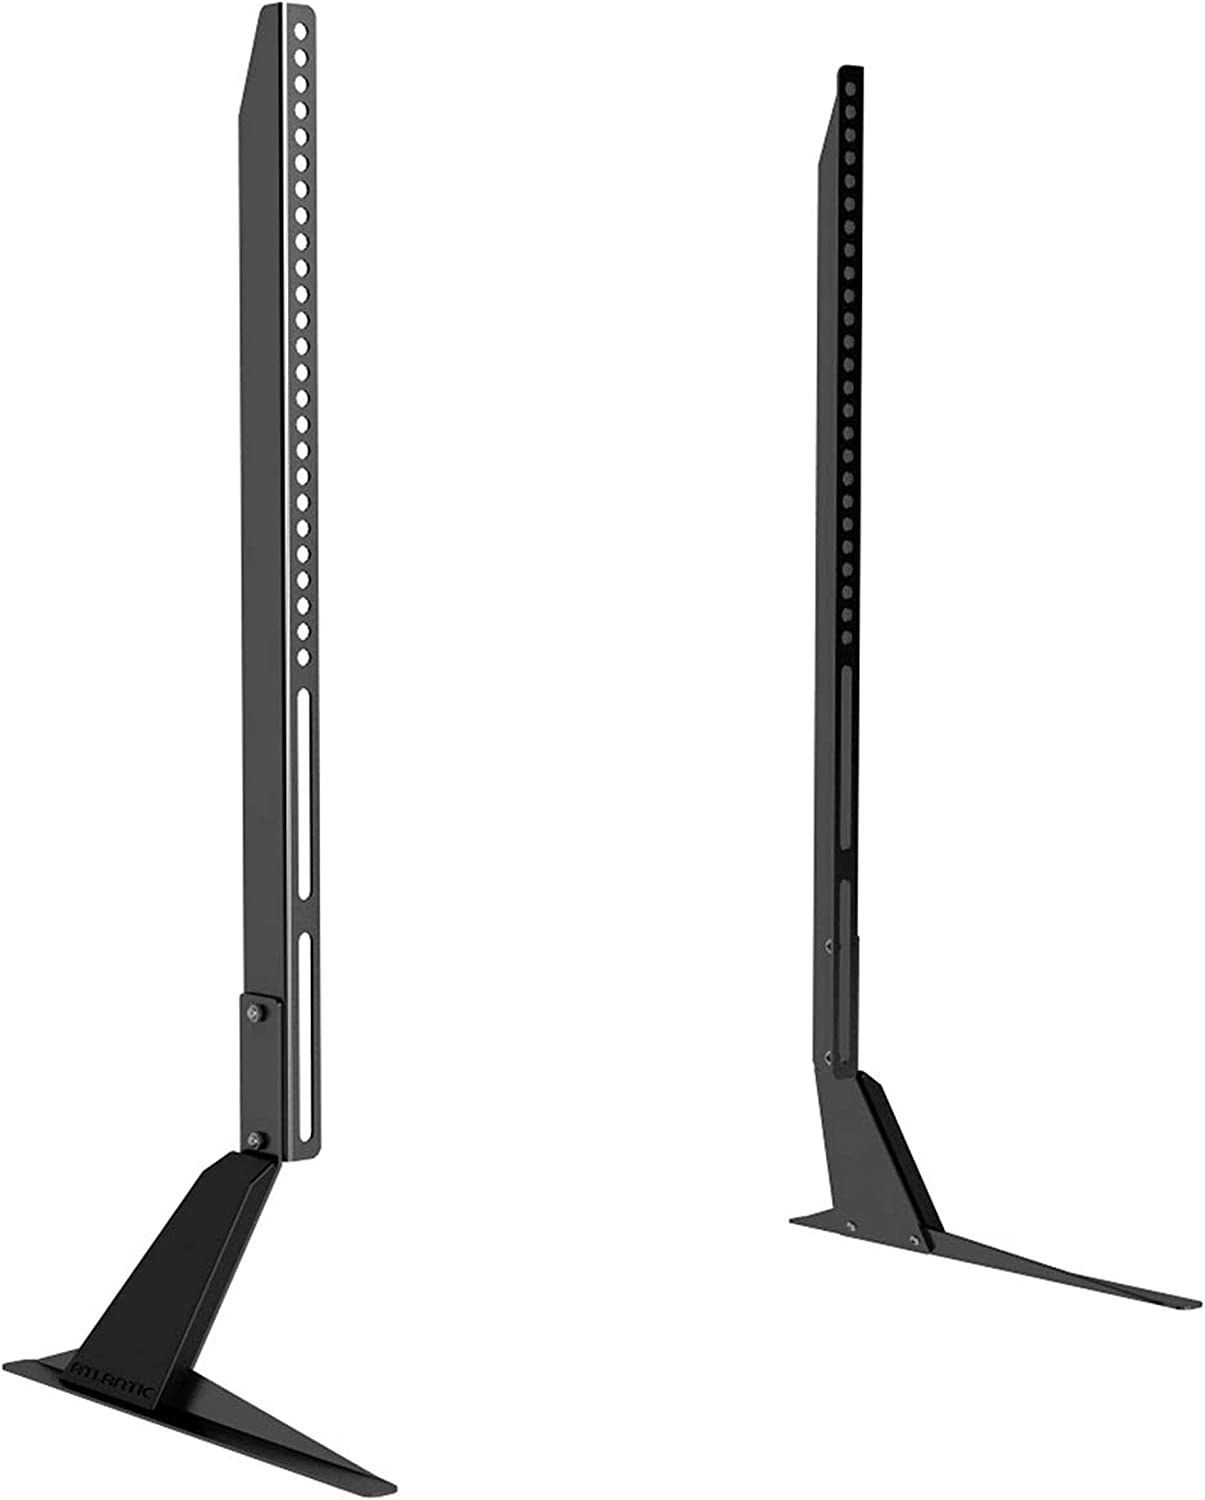 Atlantic Table Top Tv Stand Universal Adjustable Table Top Tv Stand Adjust Height Base Mount For Flat Screen Tv Up To 42 Inch And 66 Lbs Pn 63607103 In Black Home Audio Theater Amazon Com